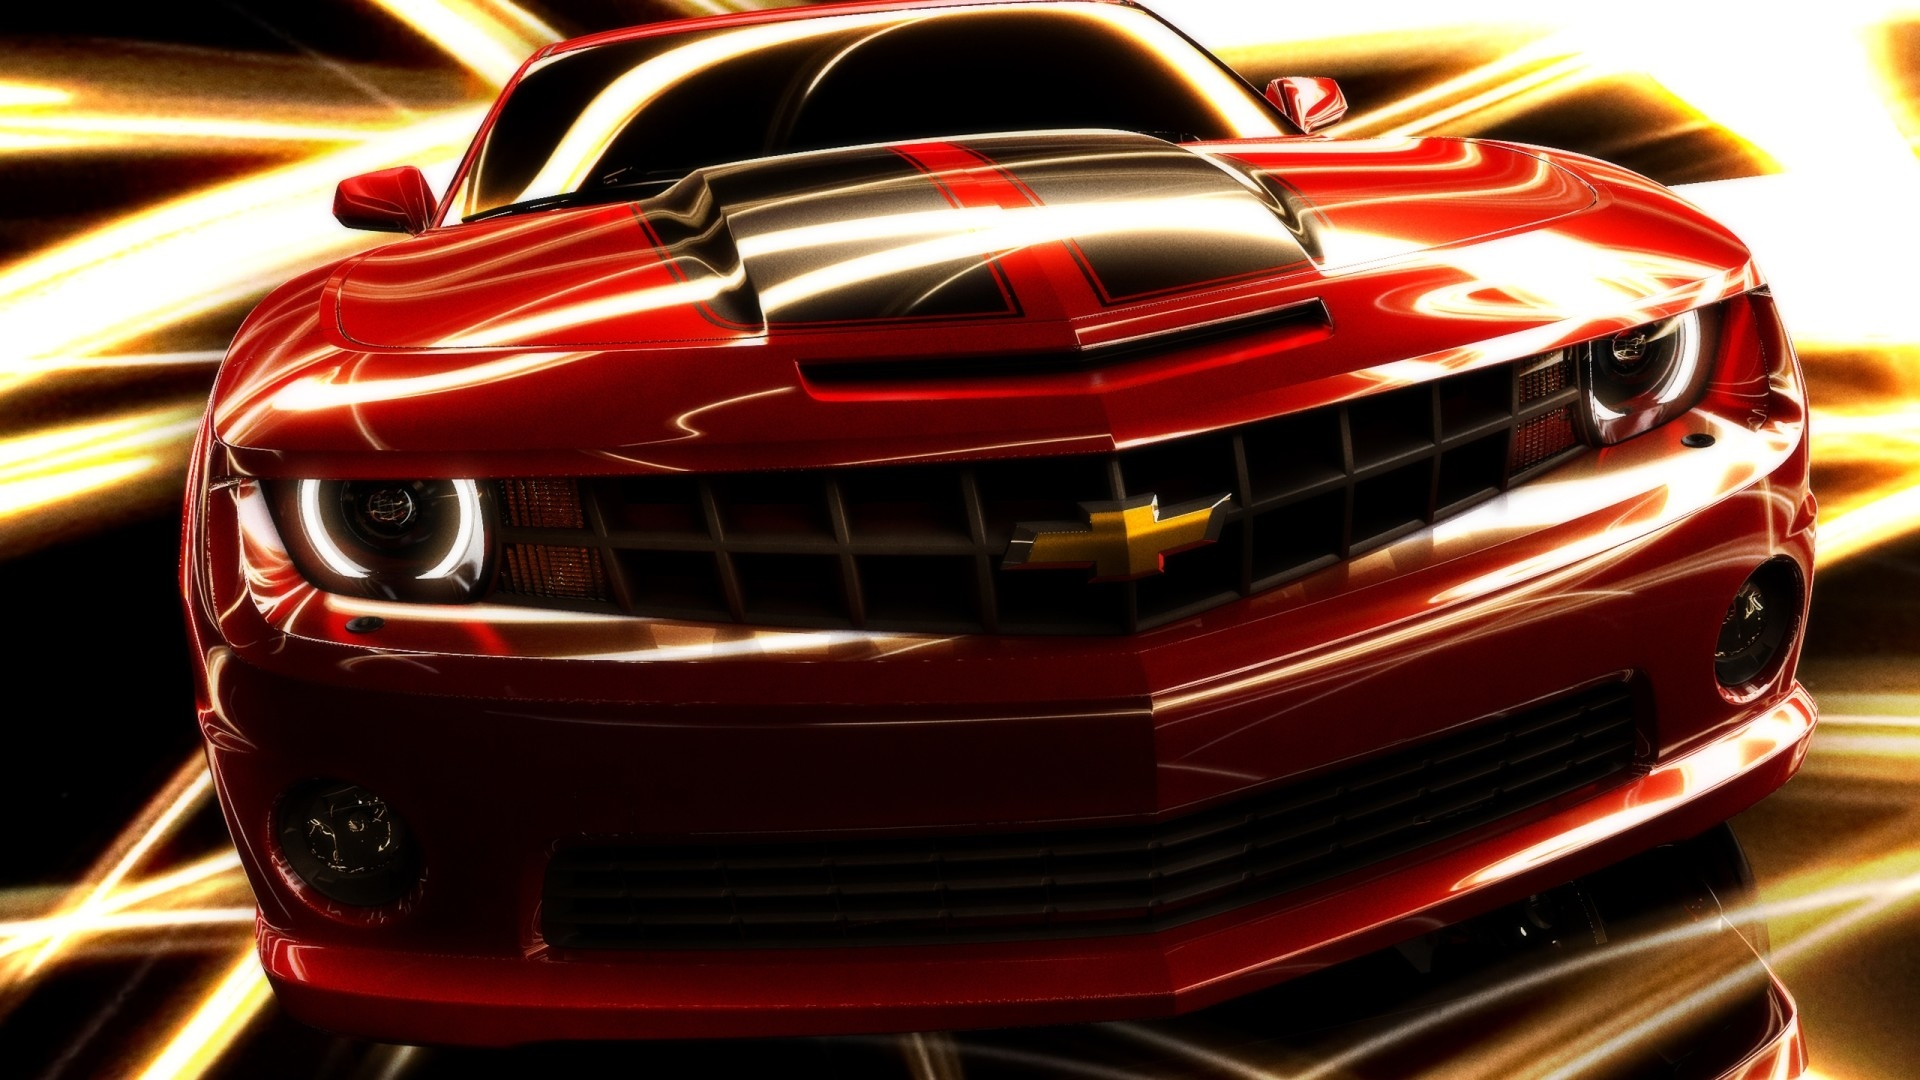 Lovely Cool Car Wallpapers Download Free | PixelsTalk Net